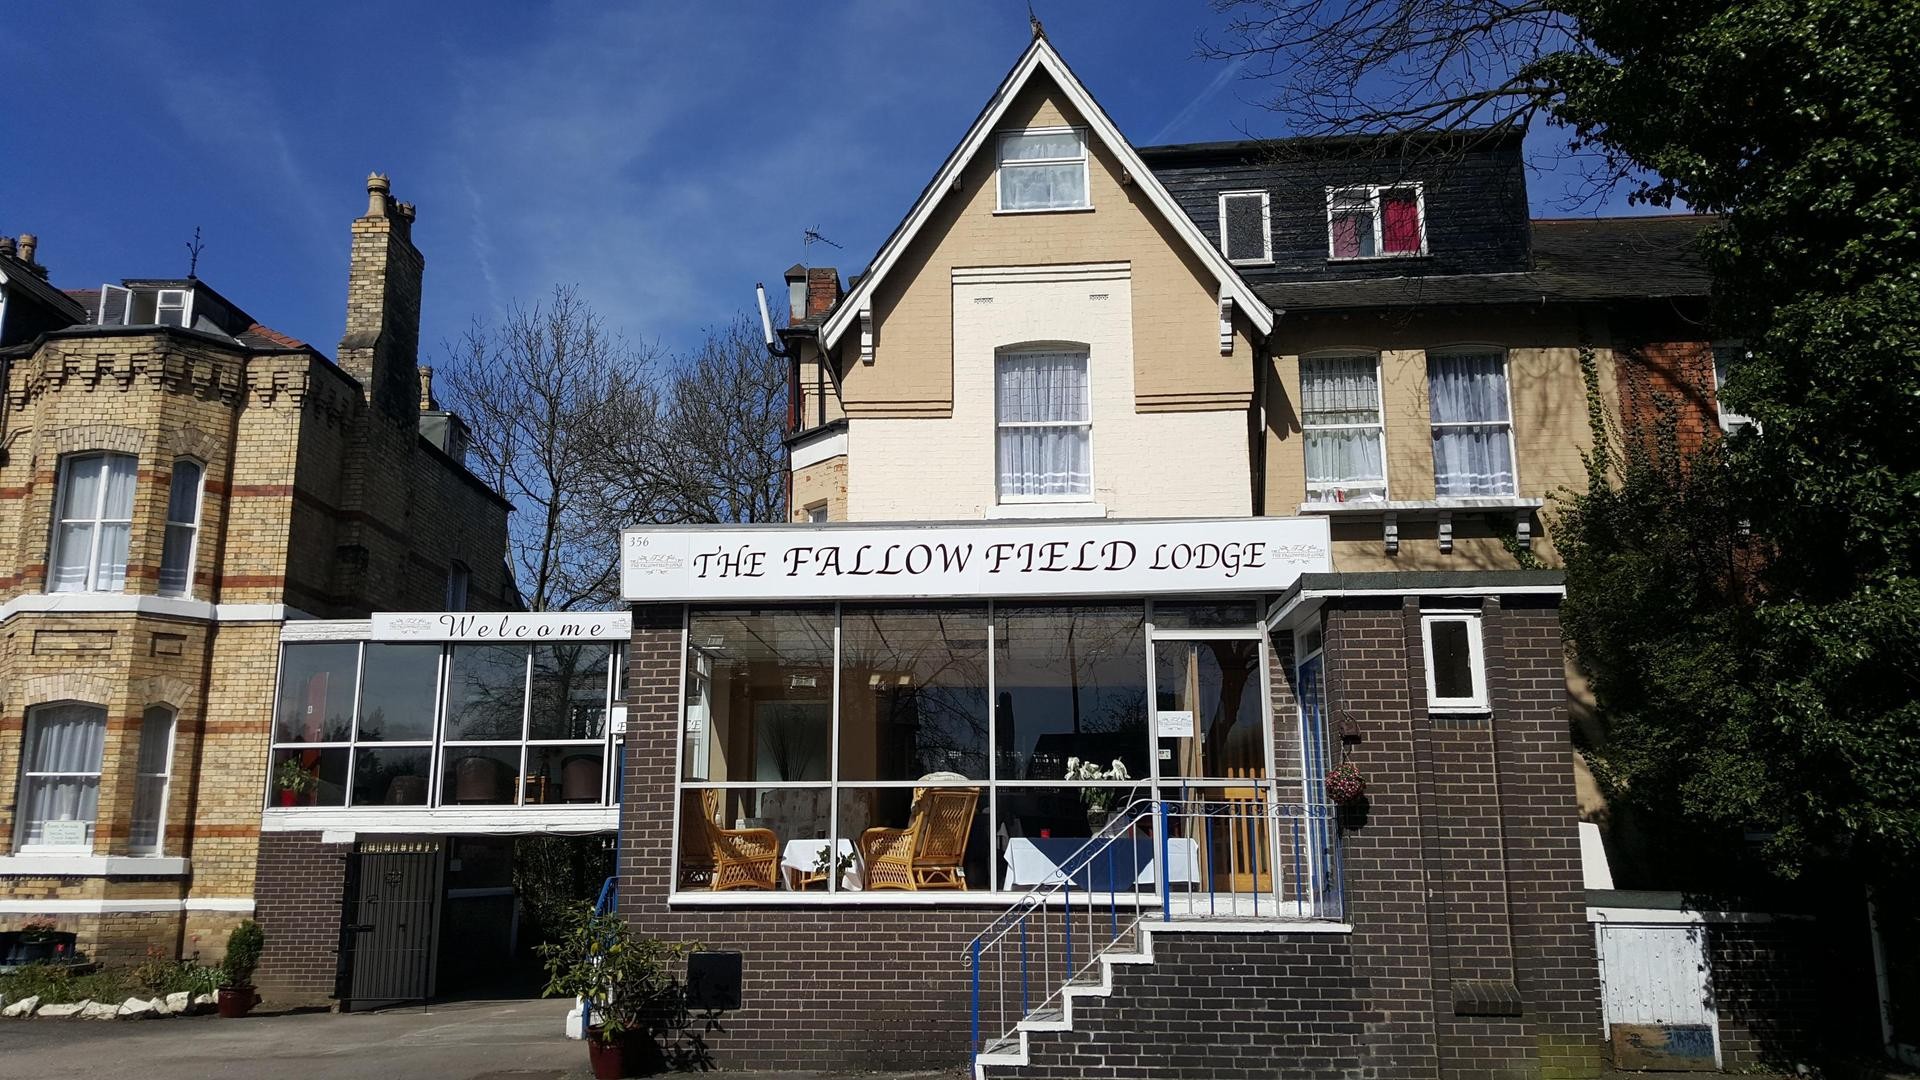 The Fallowfield Lodge in Manchester